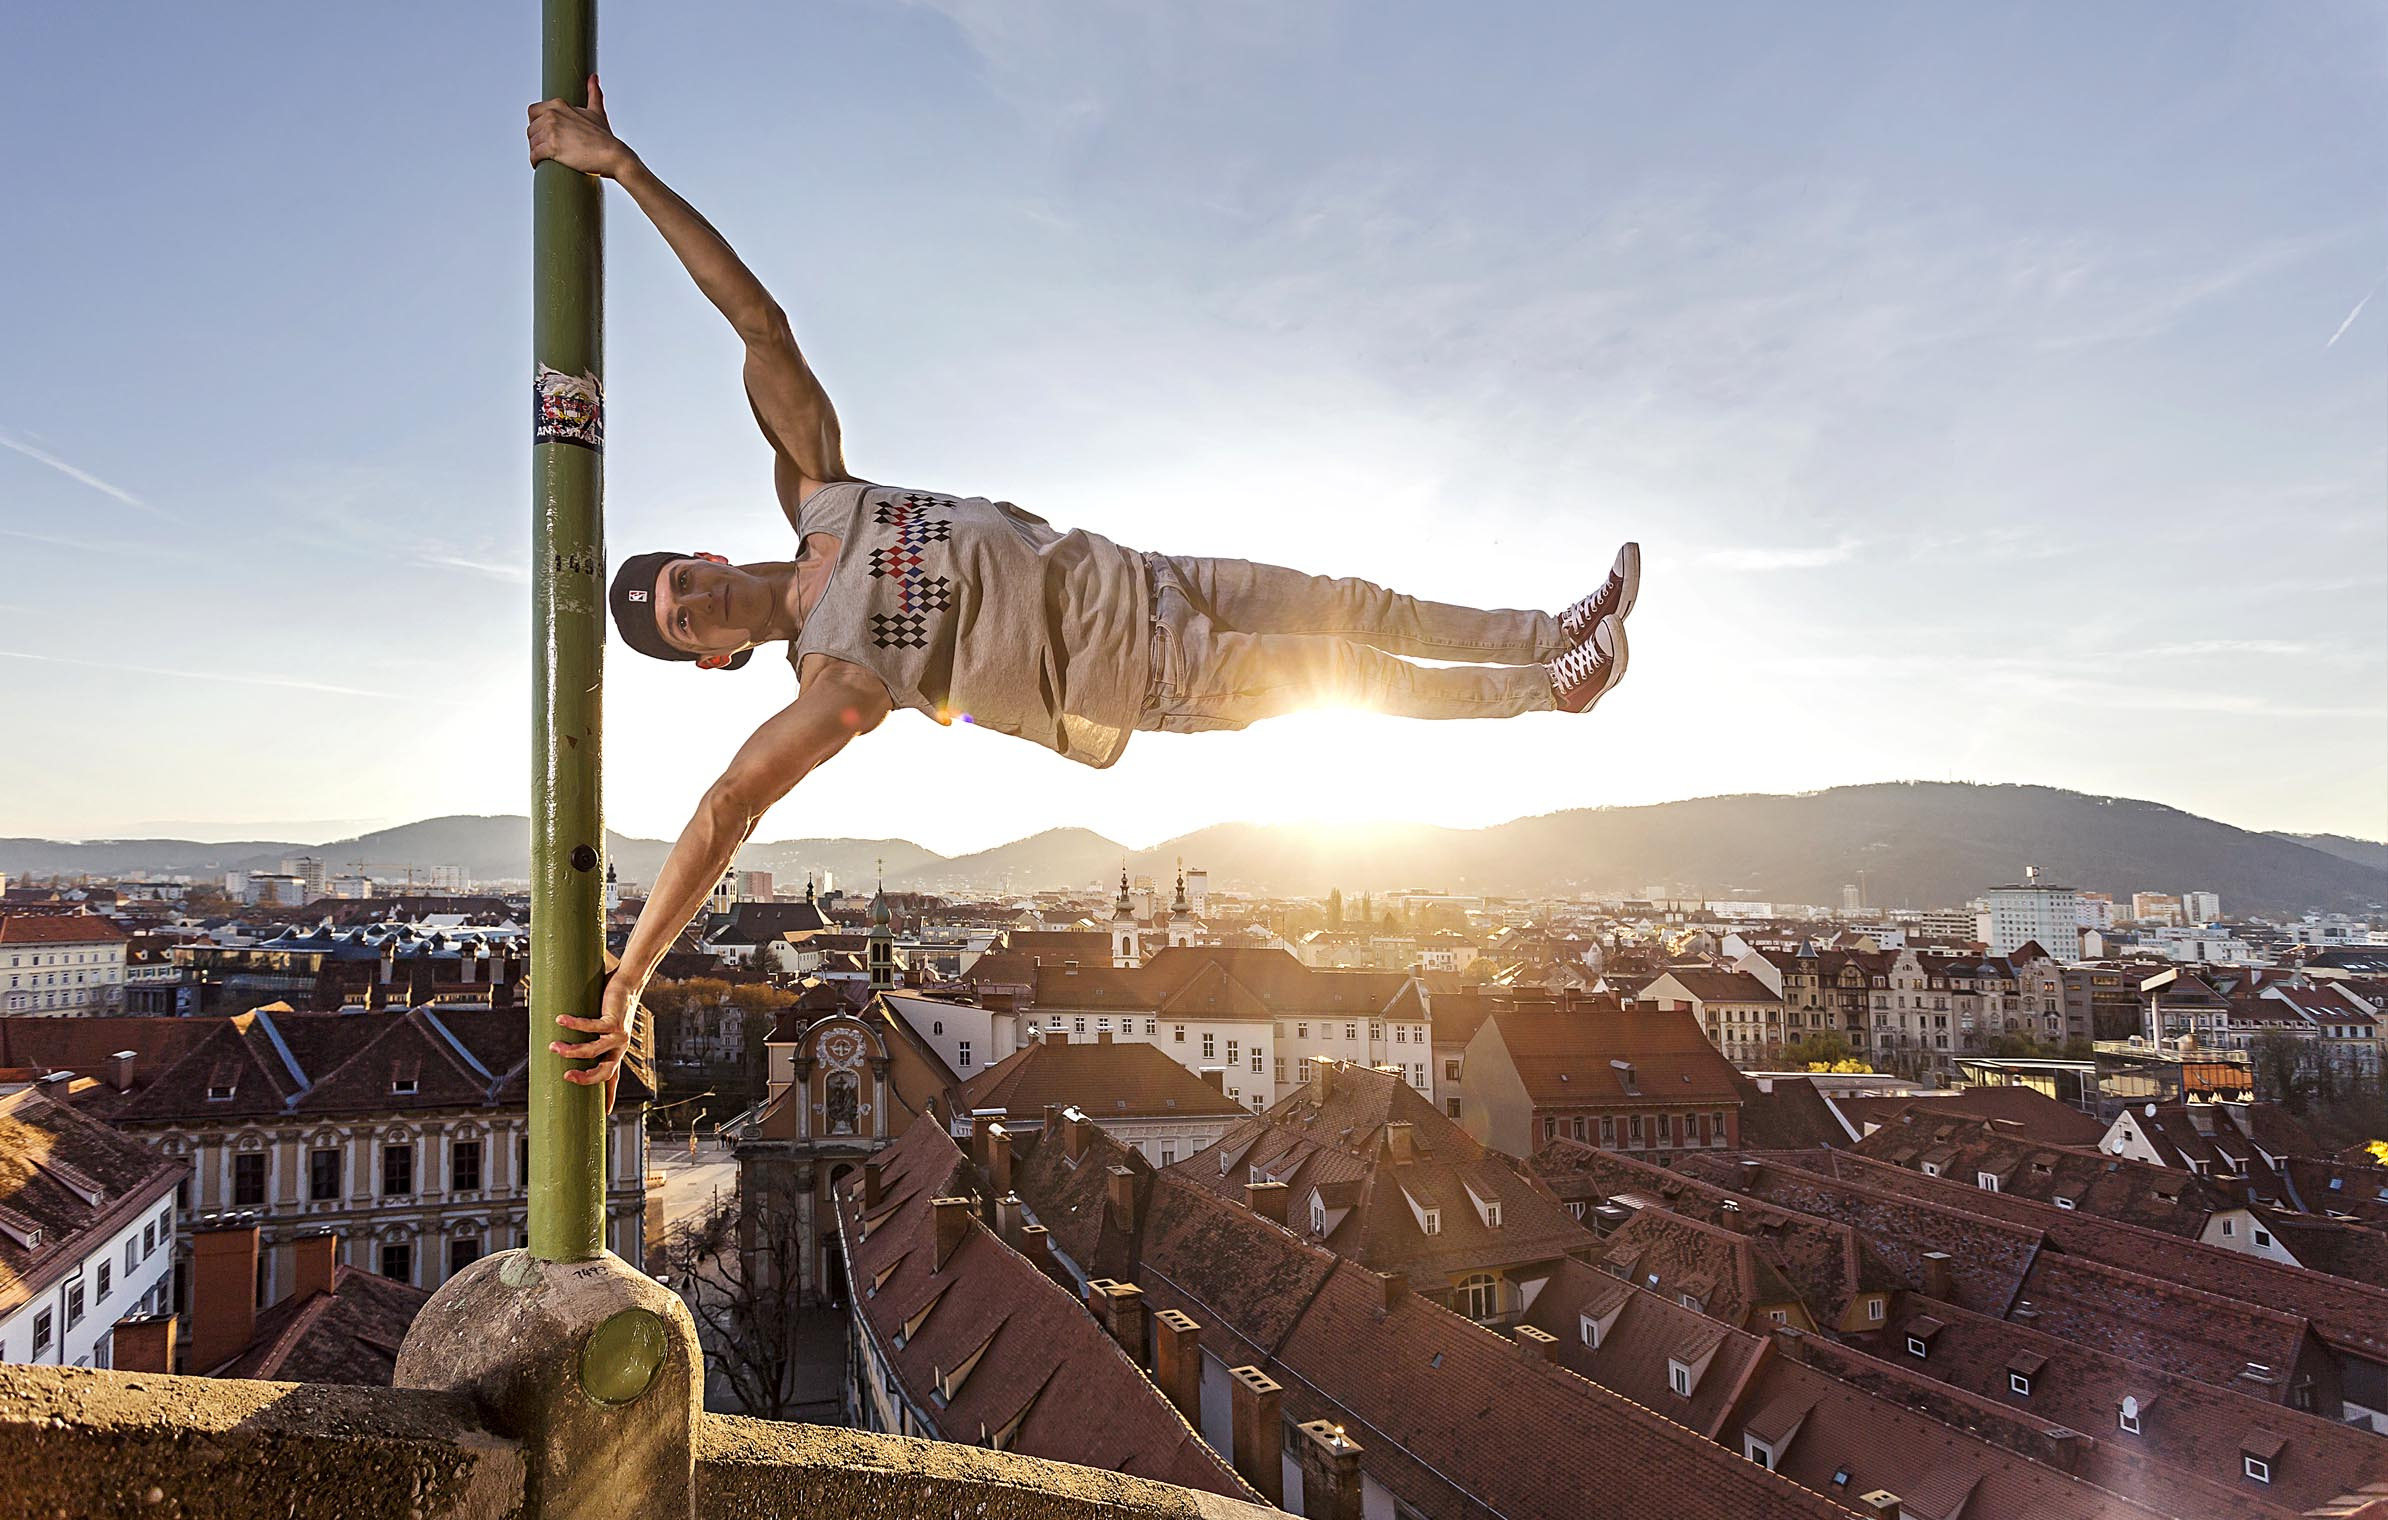 david_gergetz_graz2_schloßberg_human_flag_sunset